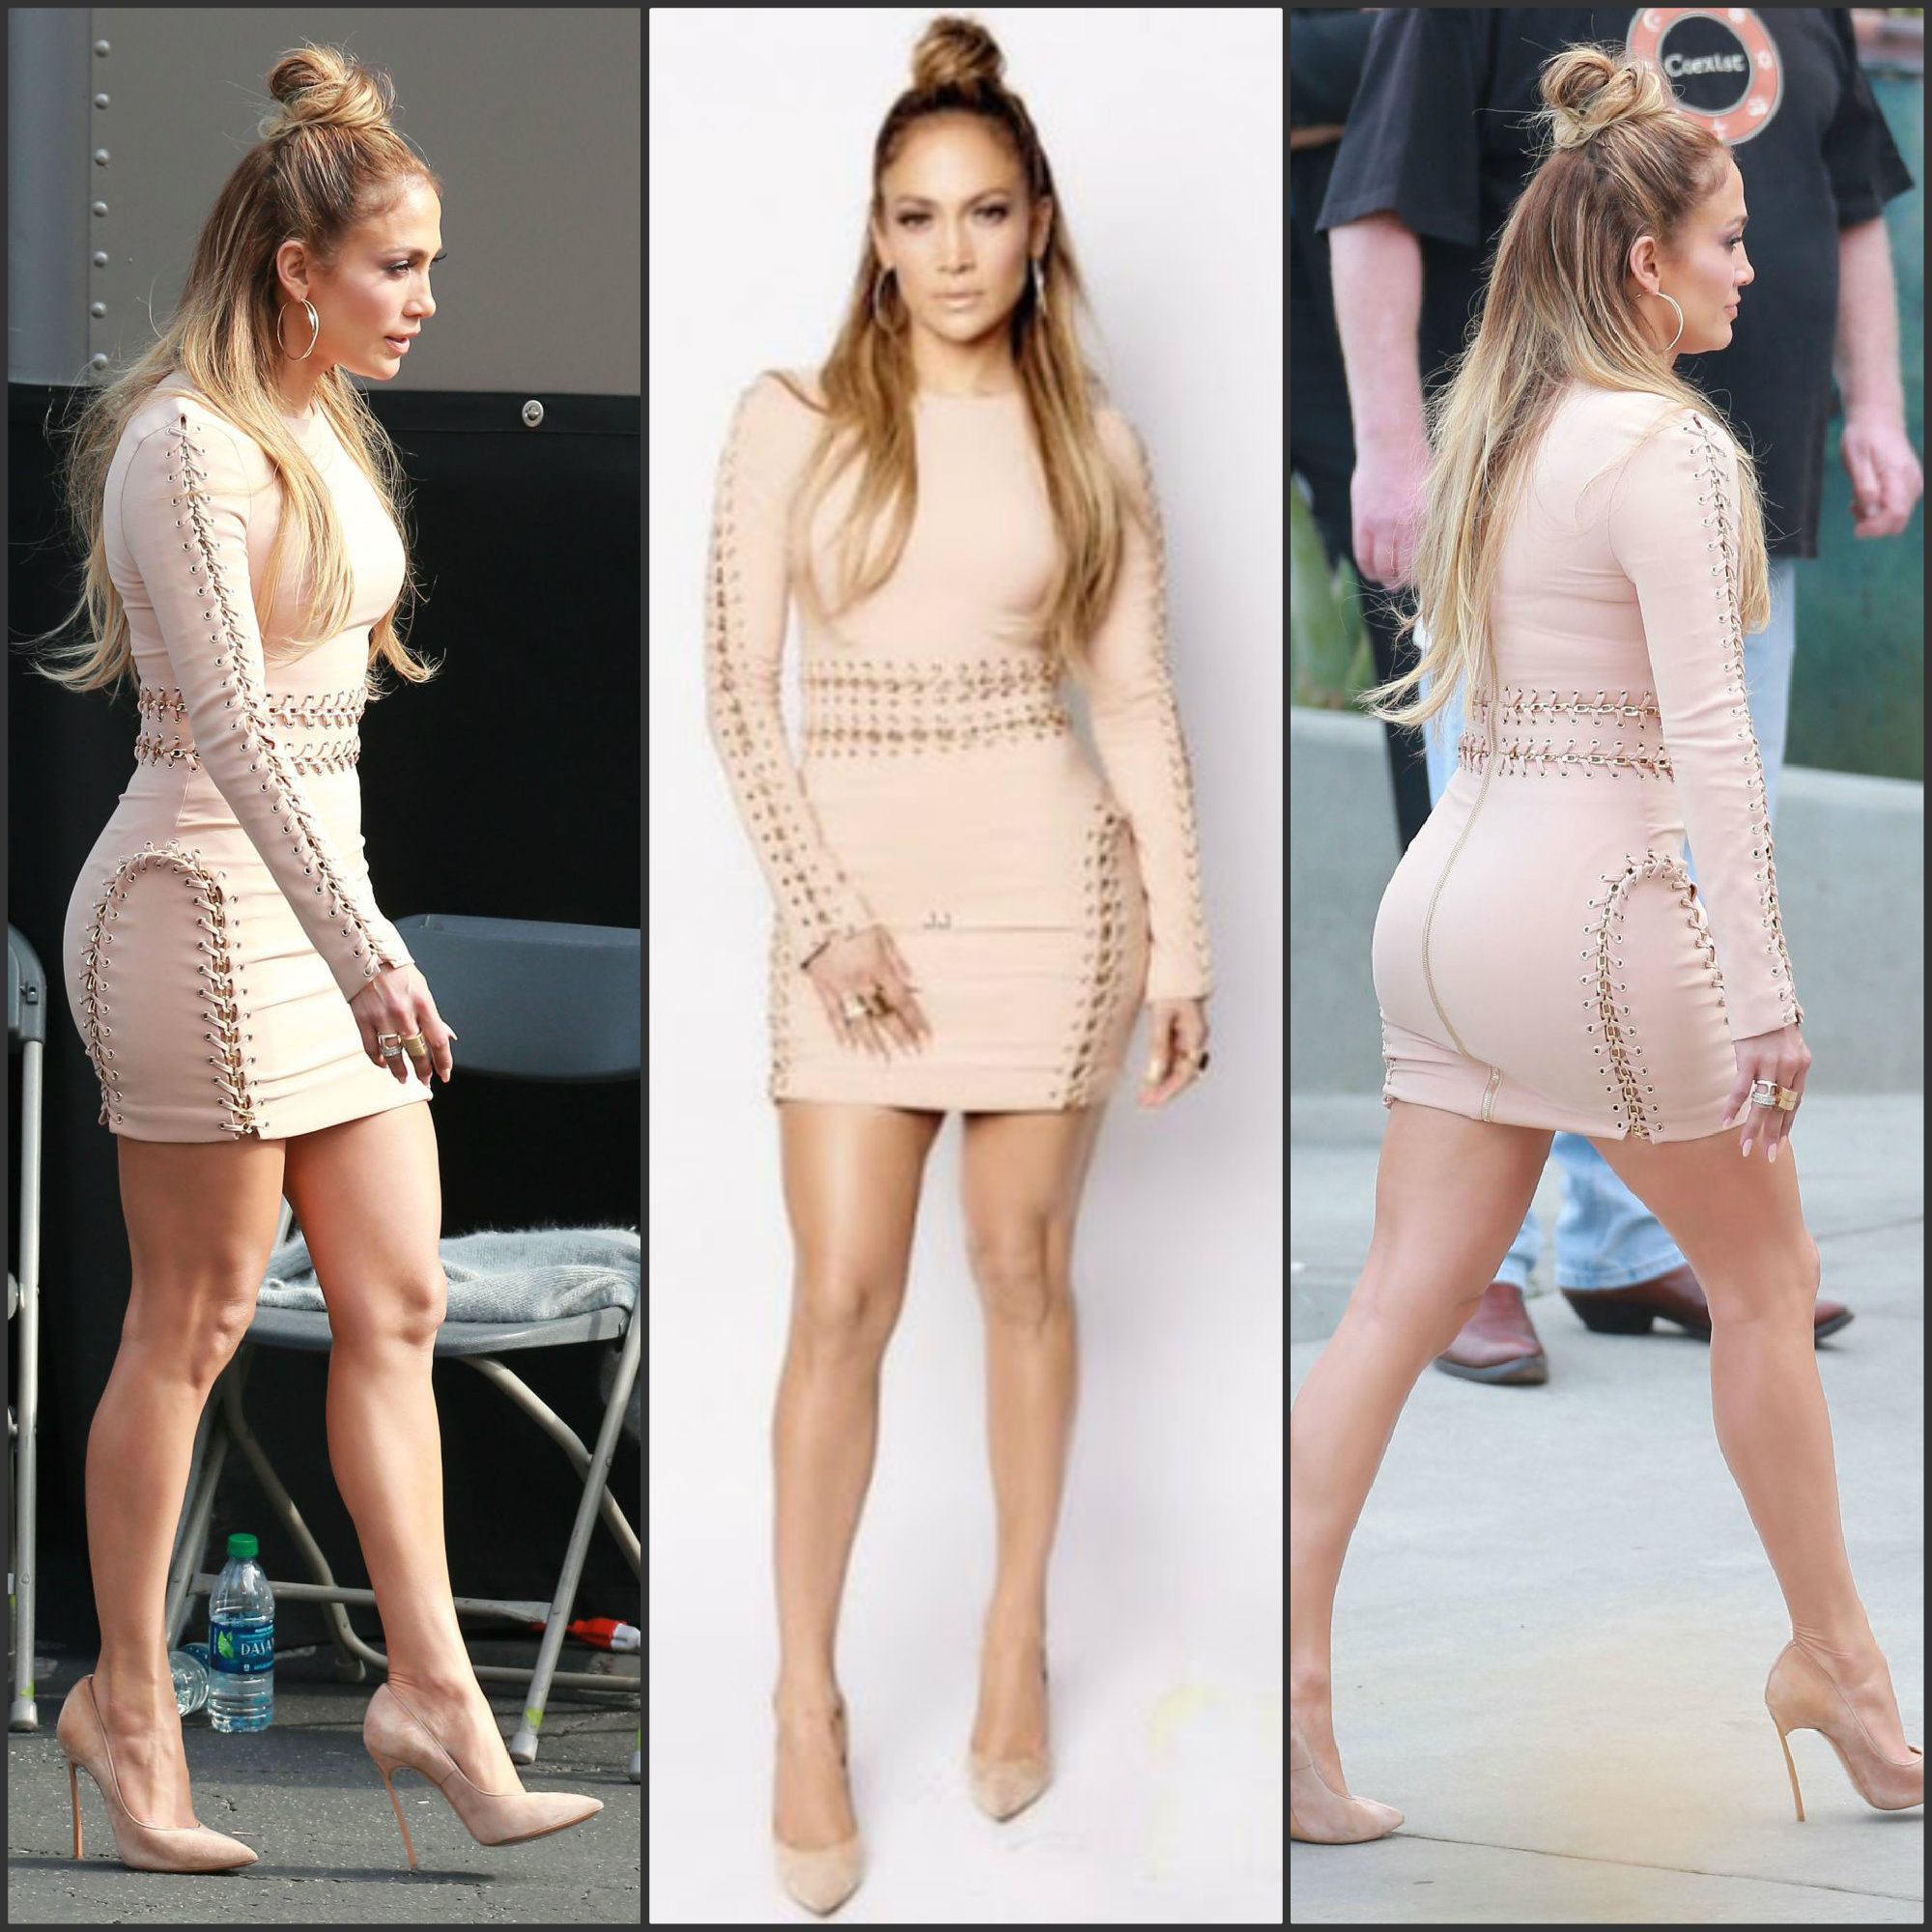 jennifer-lopez-in-house-of-cb-on-the-american-idol-season-14-at-top-3-revealed-show